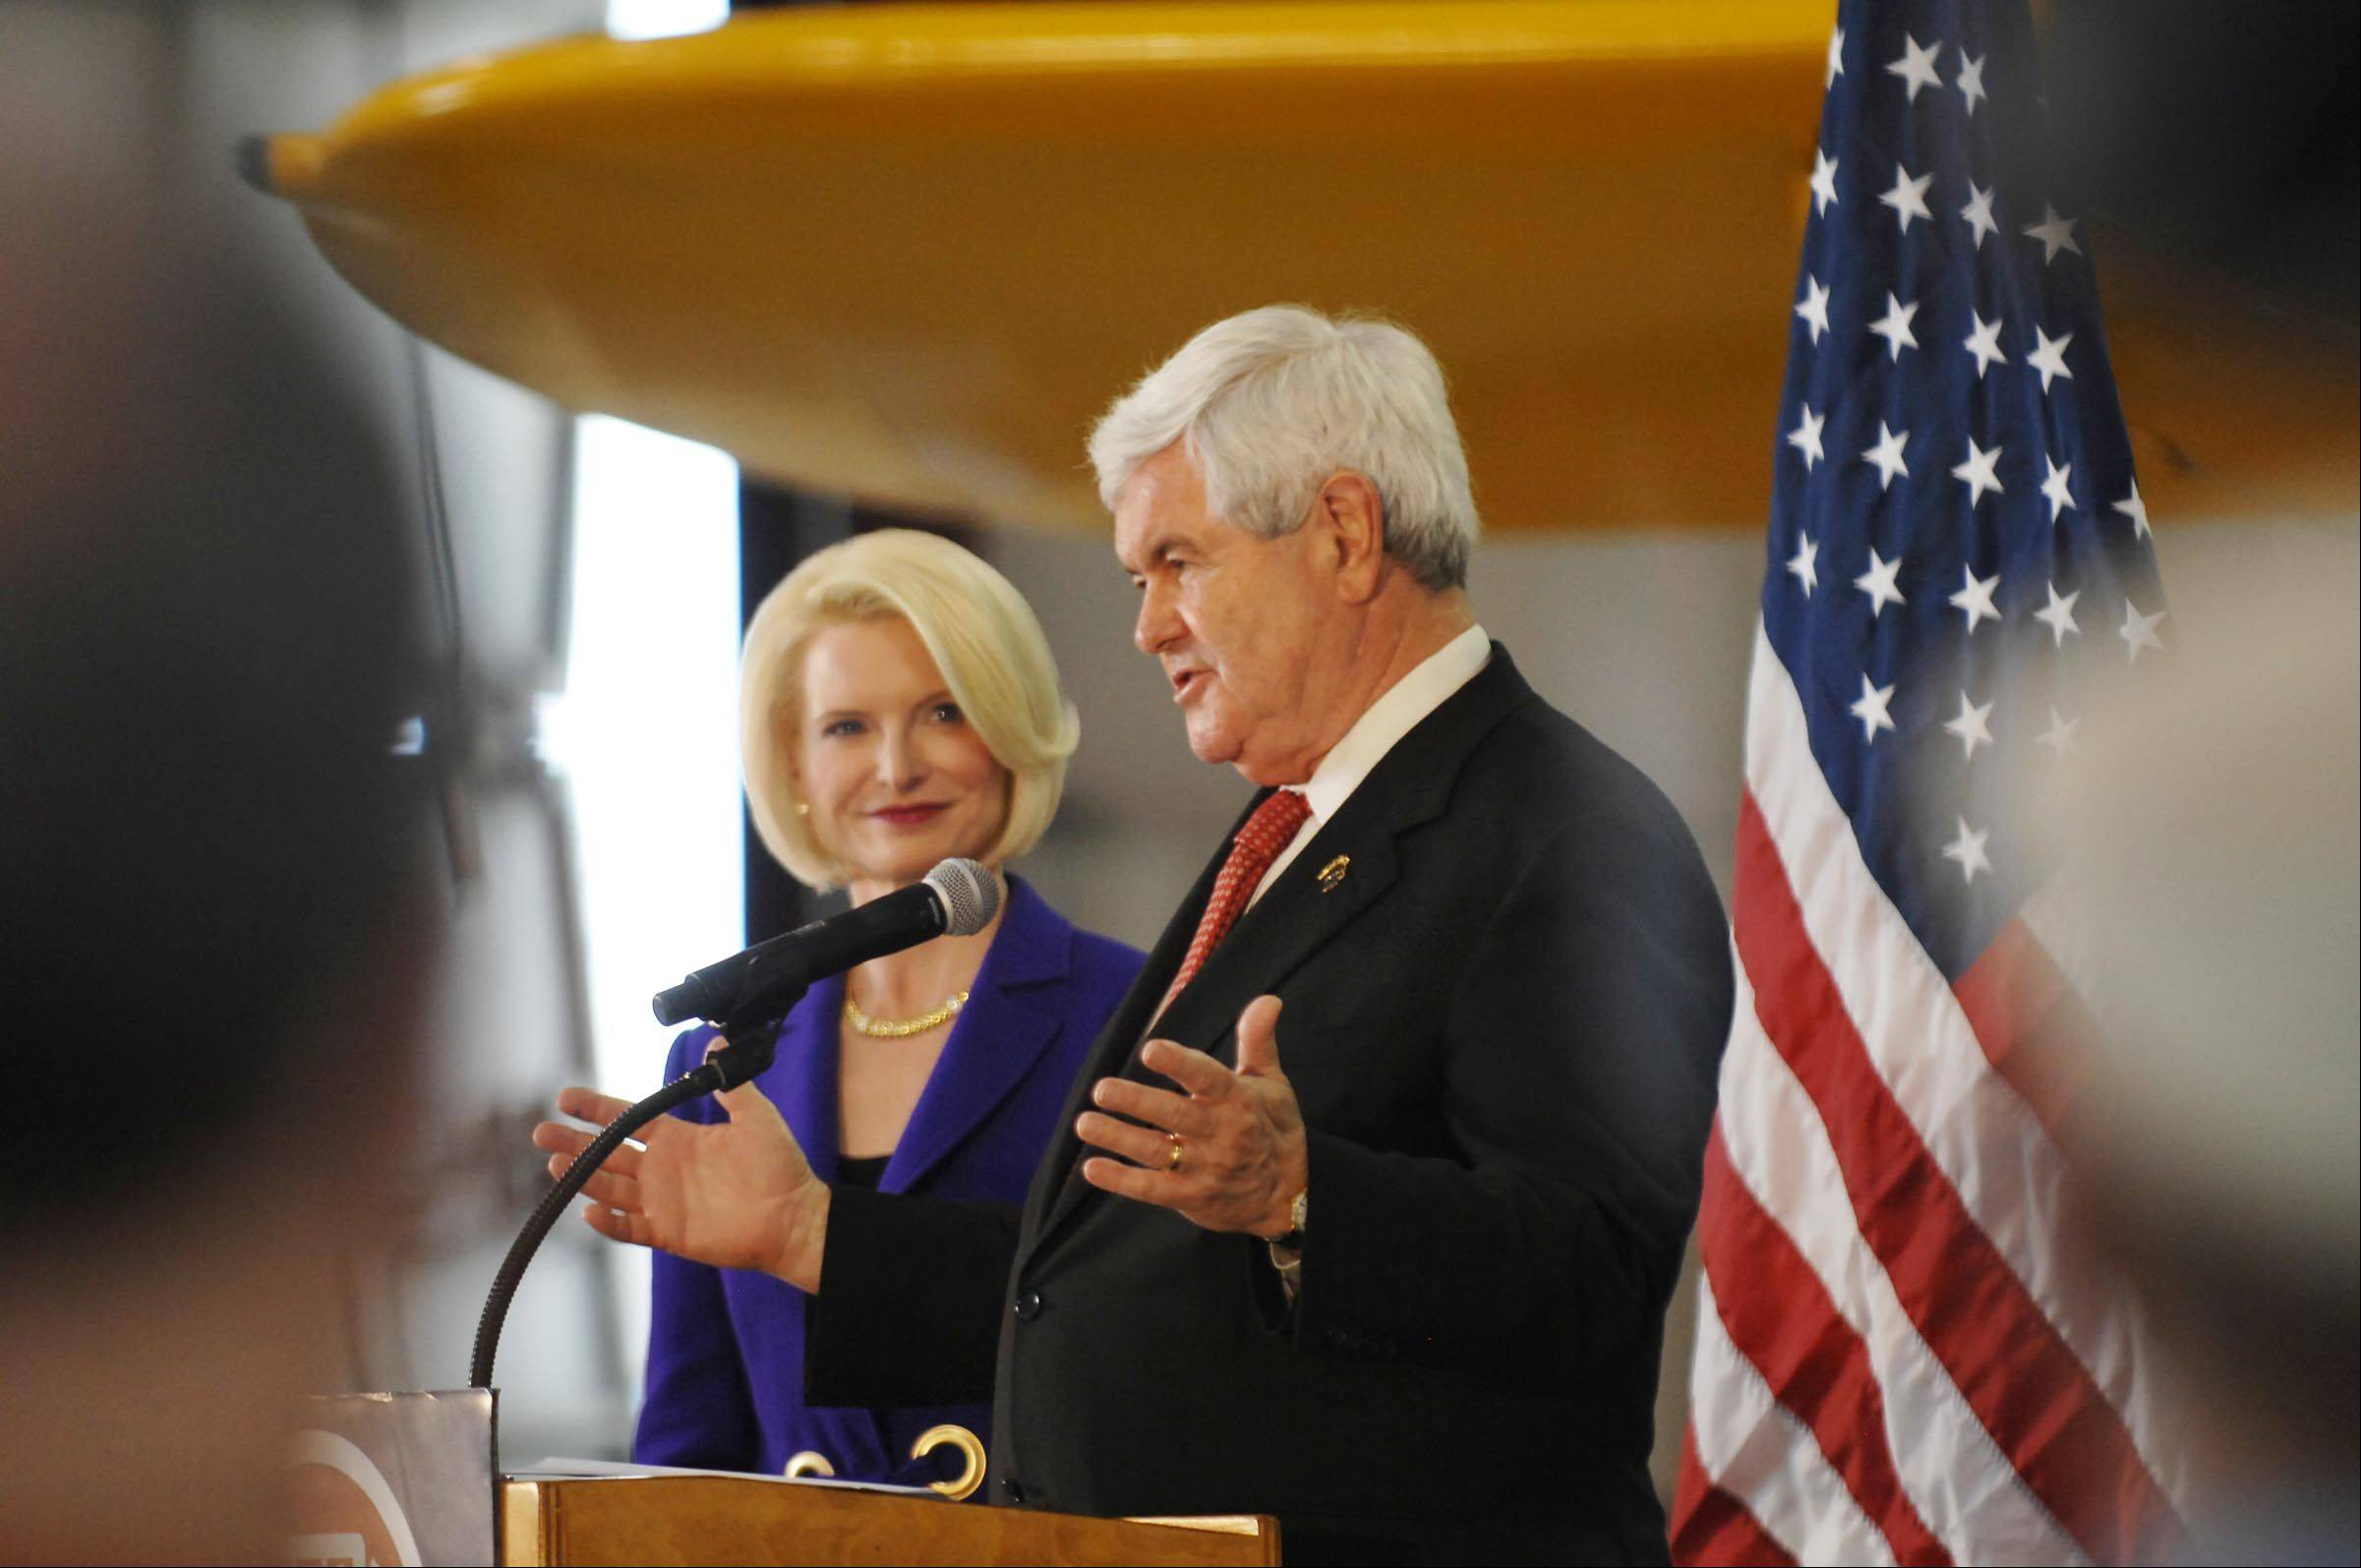 Newt Gingrich and his wife, Callista, will be signing copies of their books at Anderson�s Bookshop in Downers Grove.